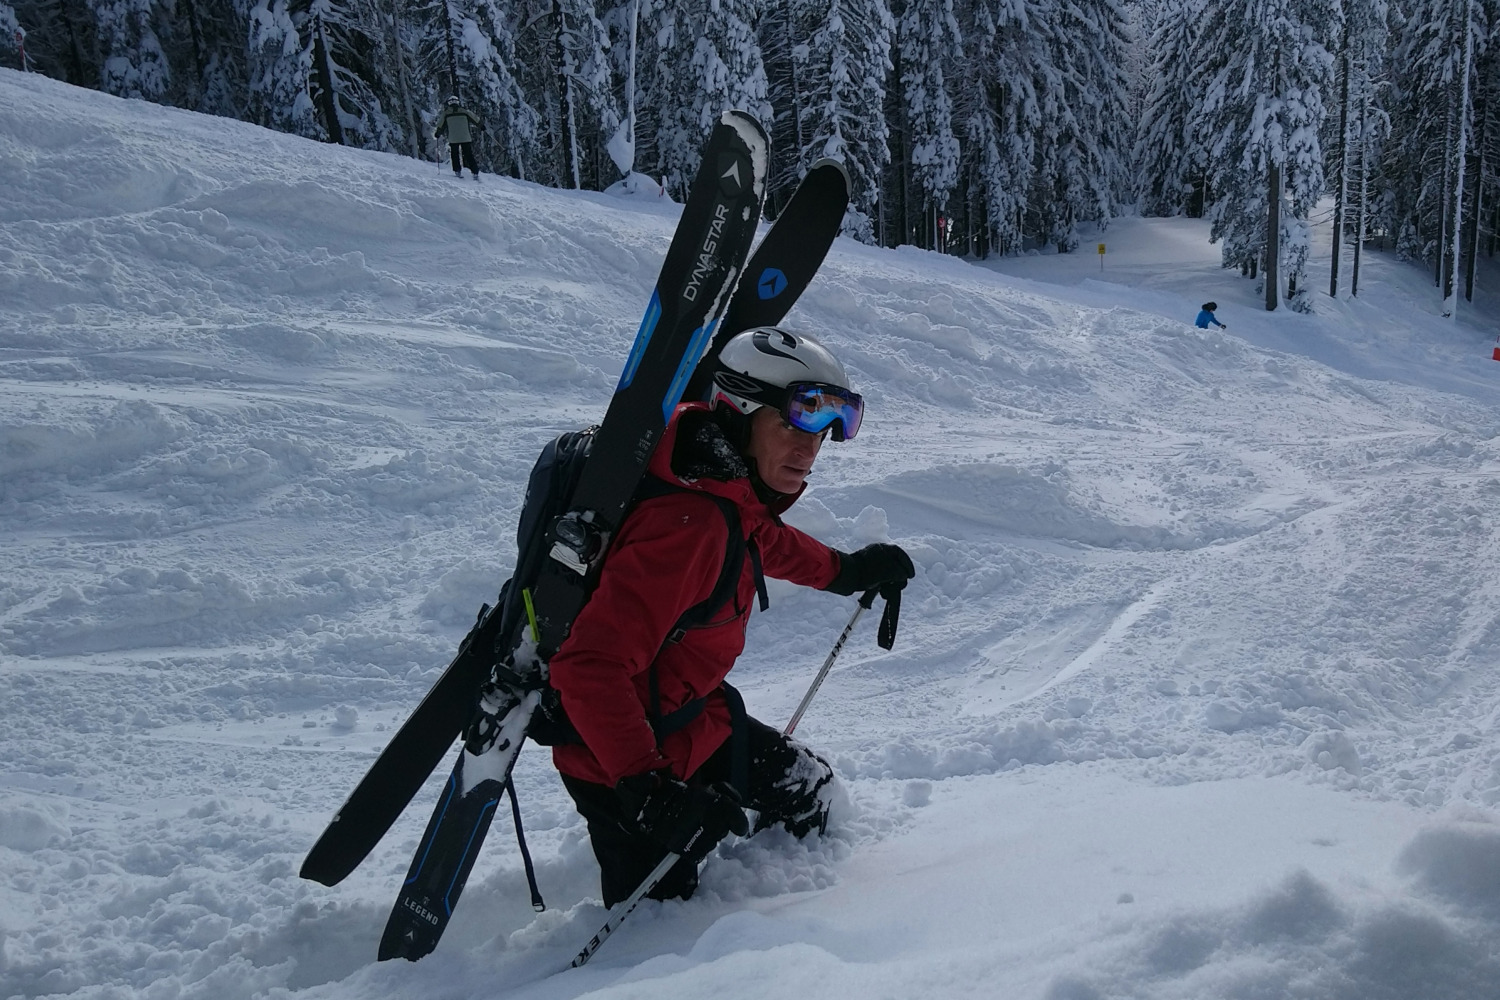 Andrew wearing Sweet Protection Trooper Ski Helmet with MIPS